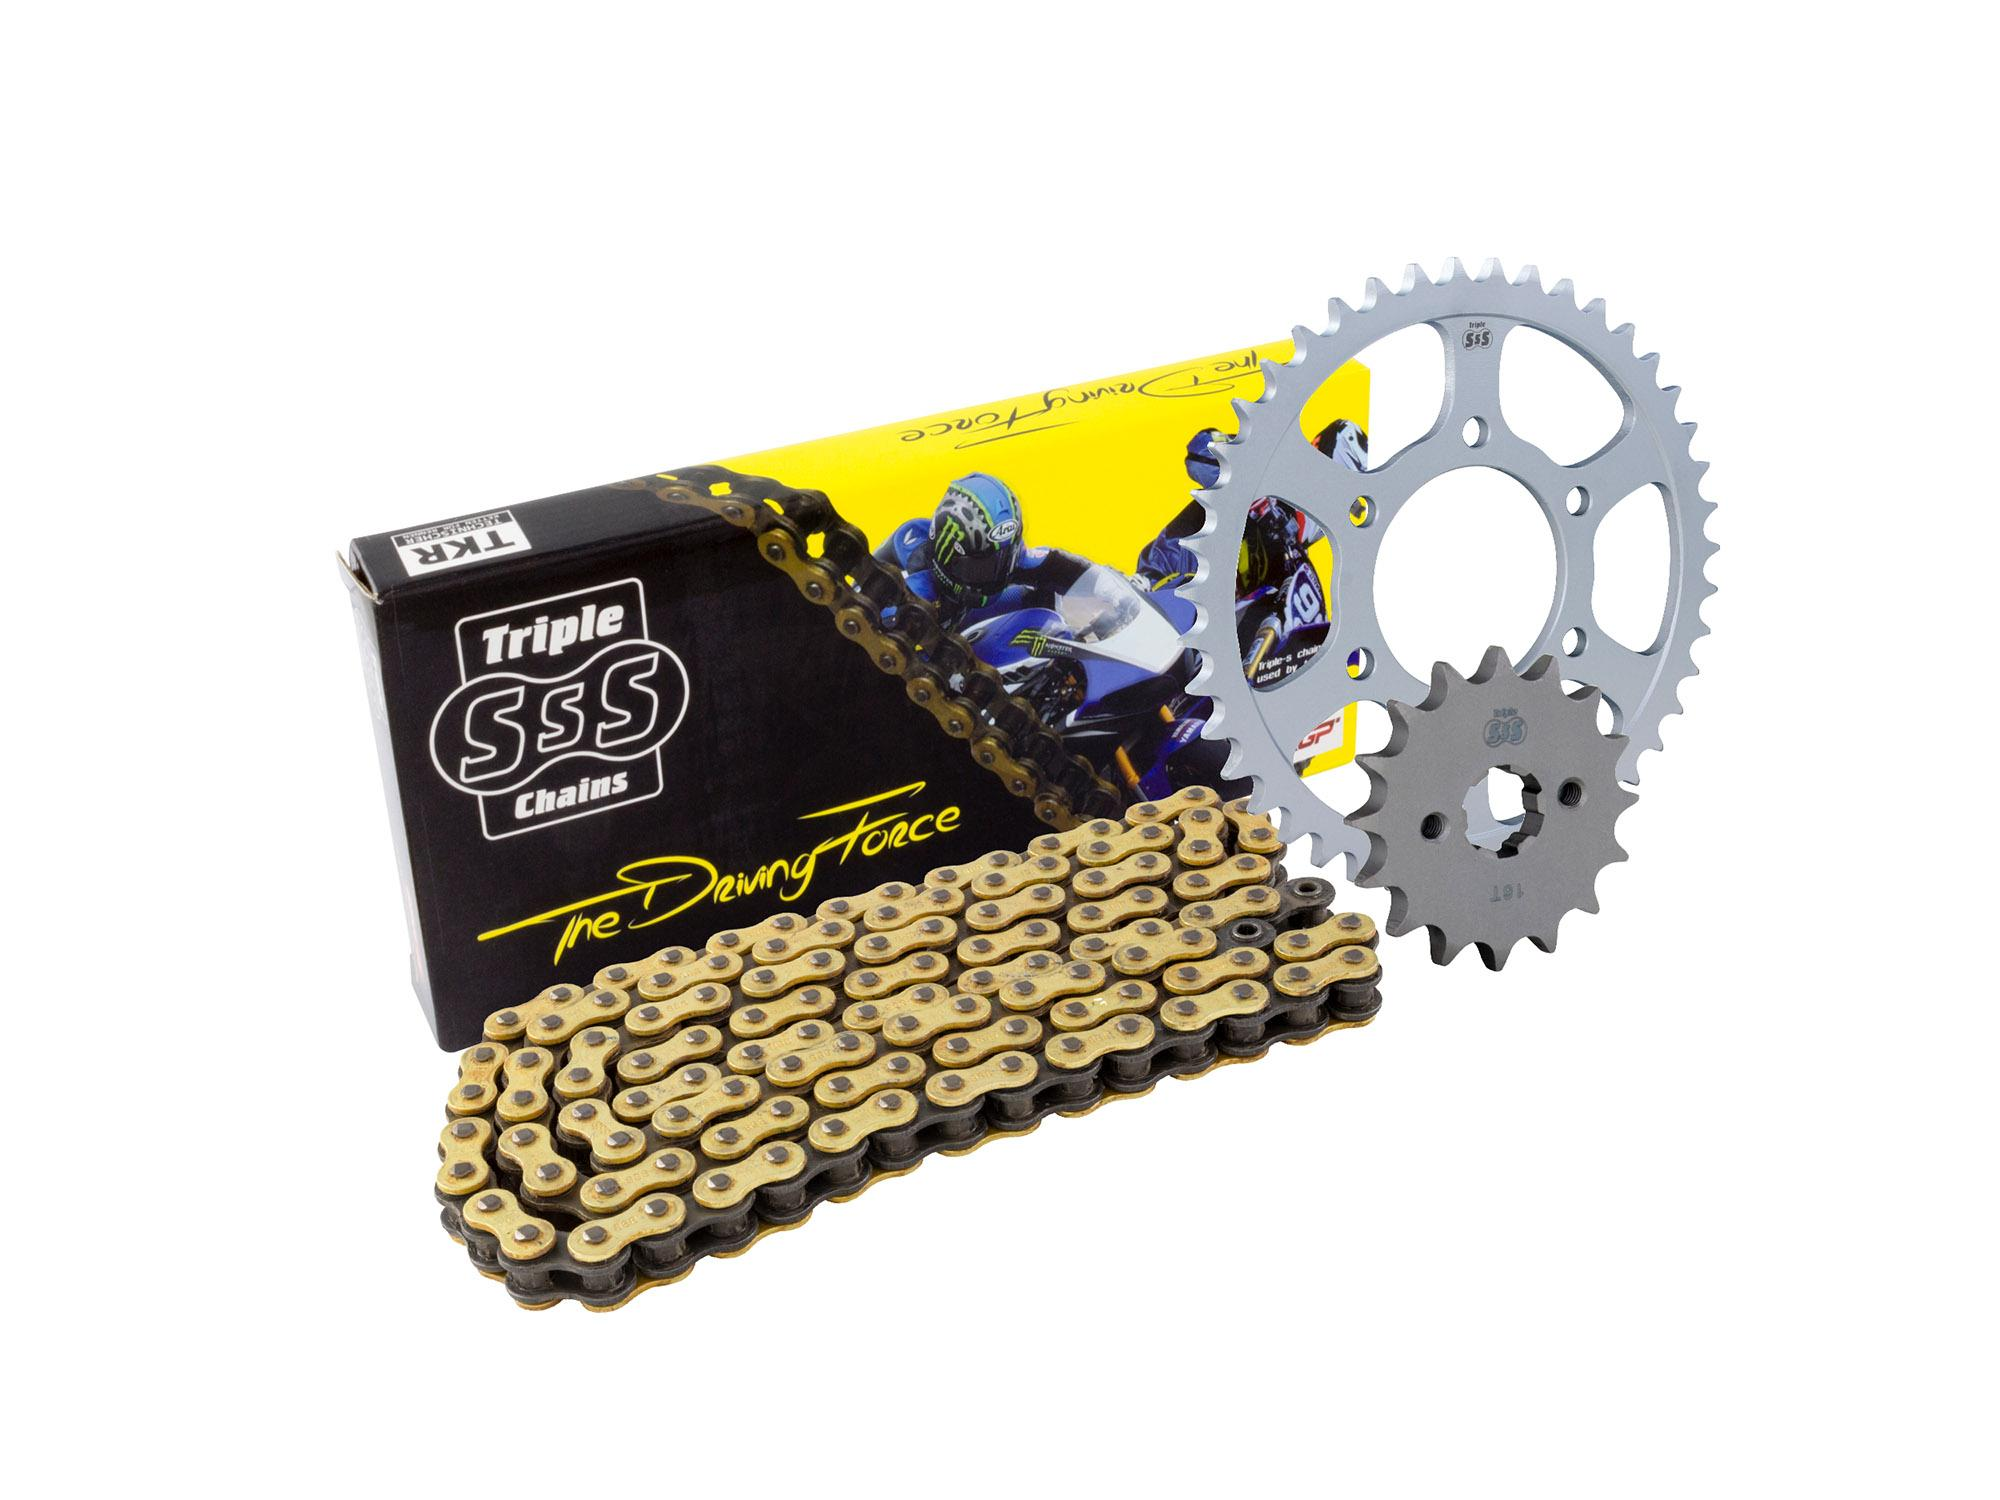 Kawasaki KLV1000 04-06 Chain & Sprocket Kit: 17T Front, 41T Rear, HD O-Ring Gold Chain 525H 112Link